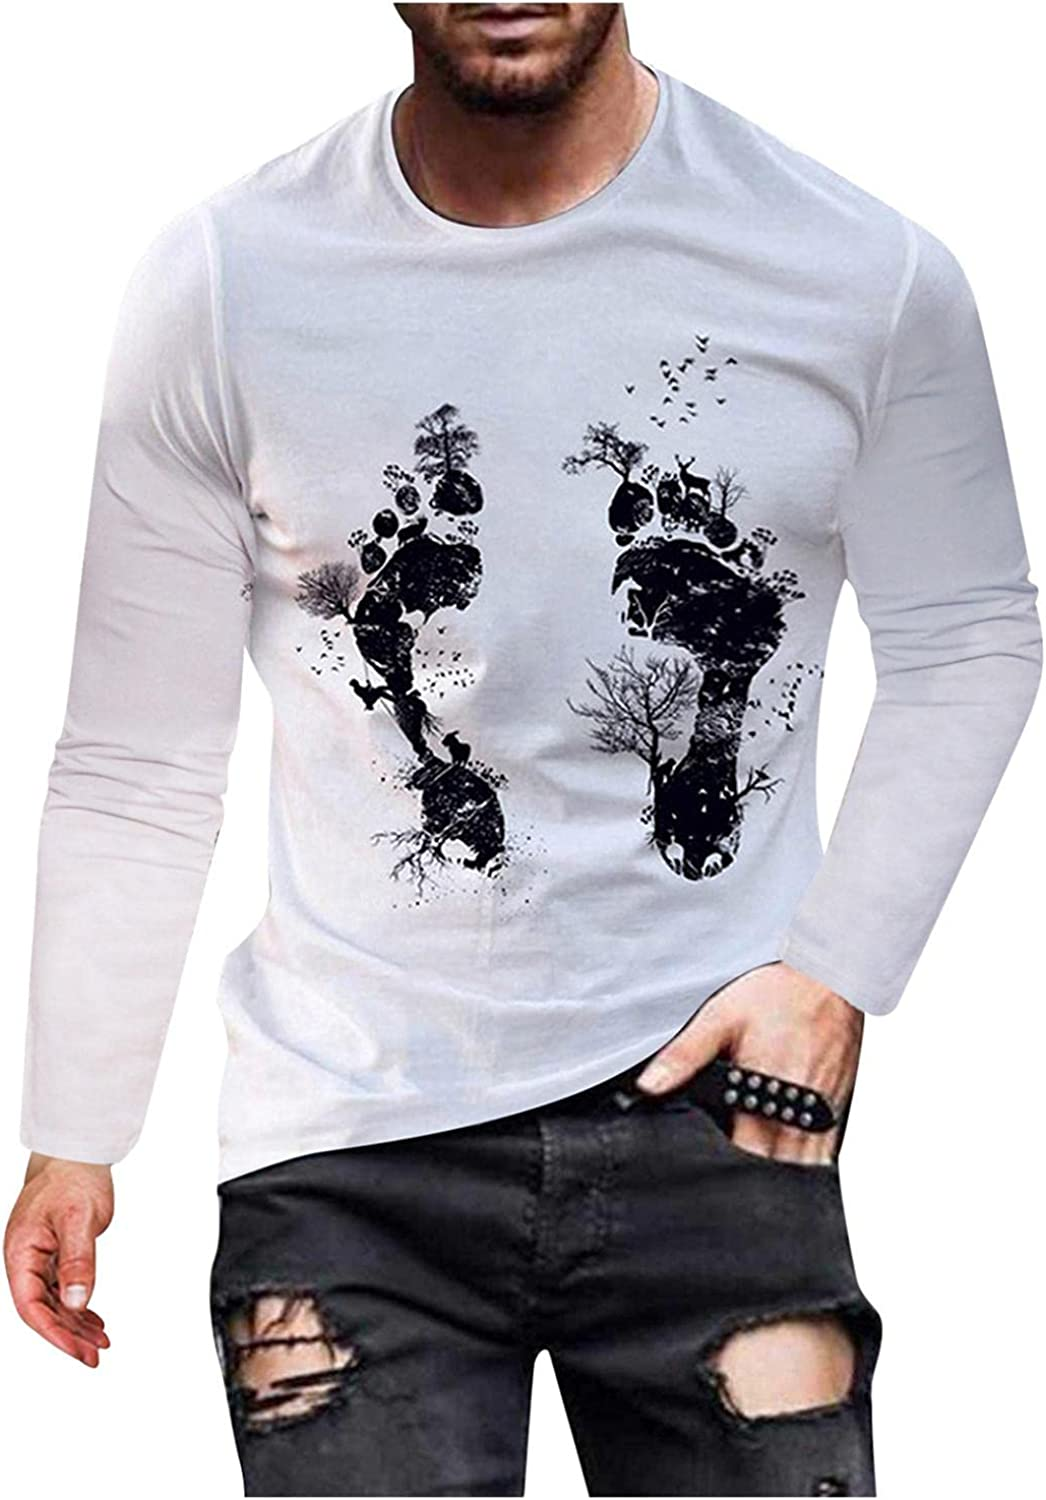 Men's T-Shirts Casual Long Sleeve Graphic Vintage Funny Shirt Lightweight Pullover Tops Workout Running Tees